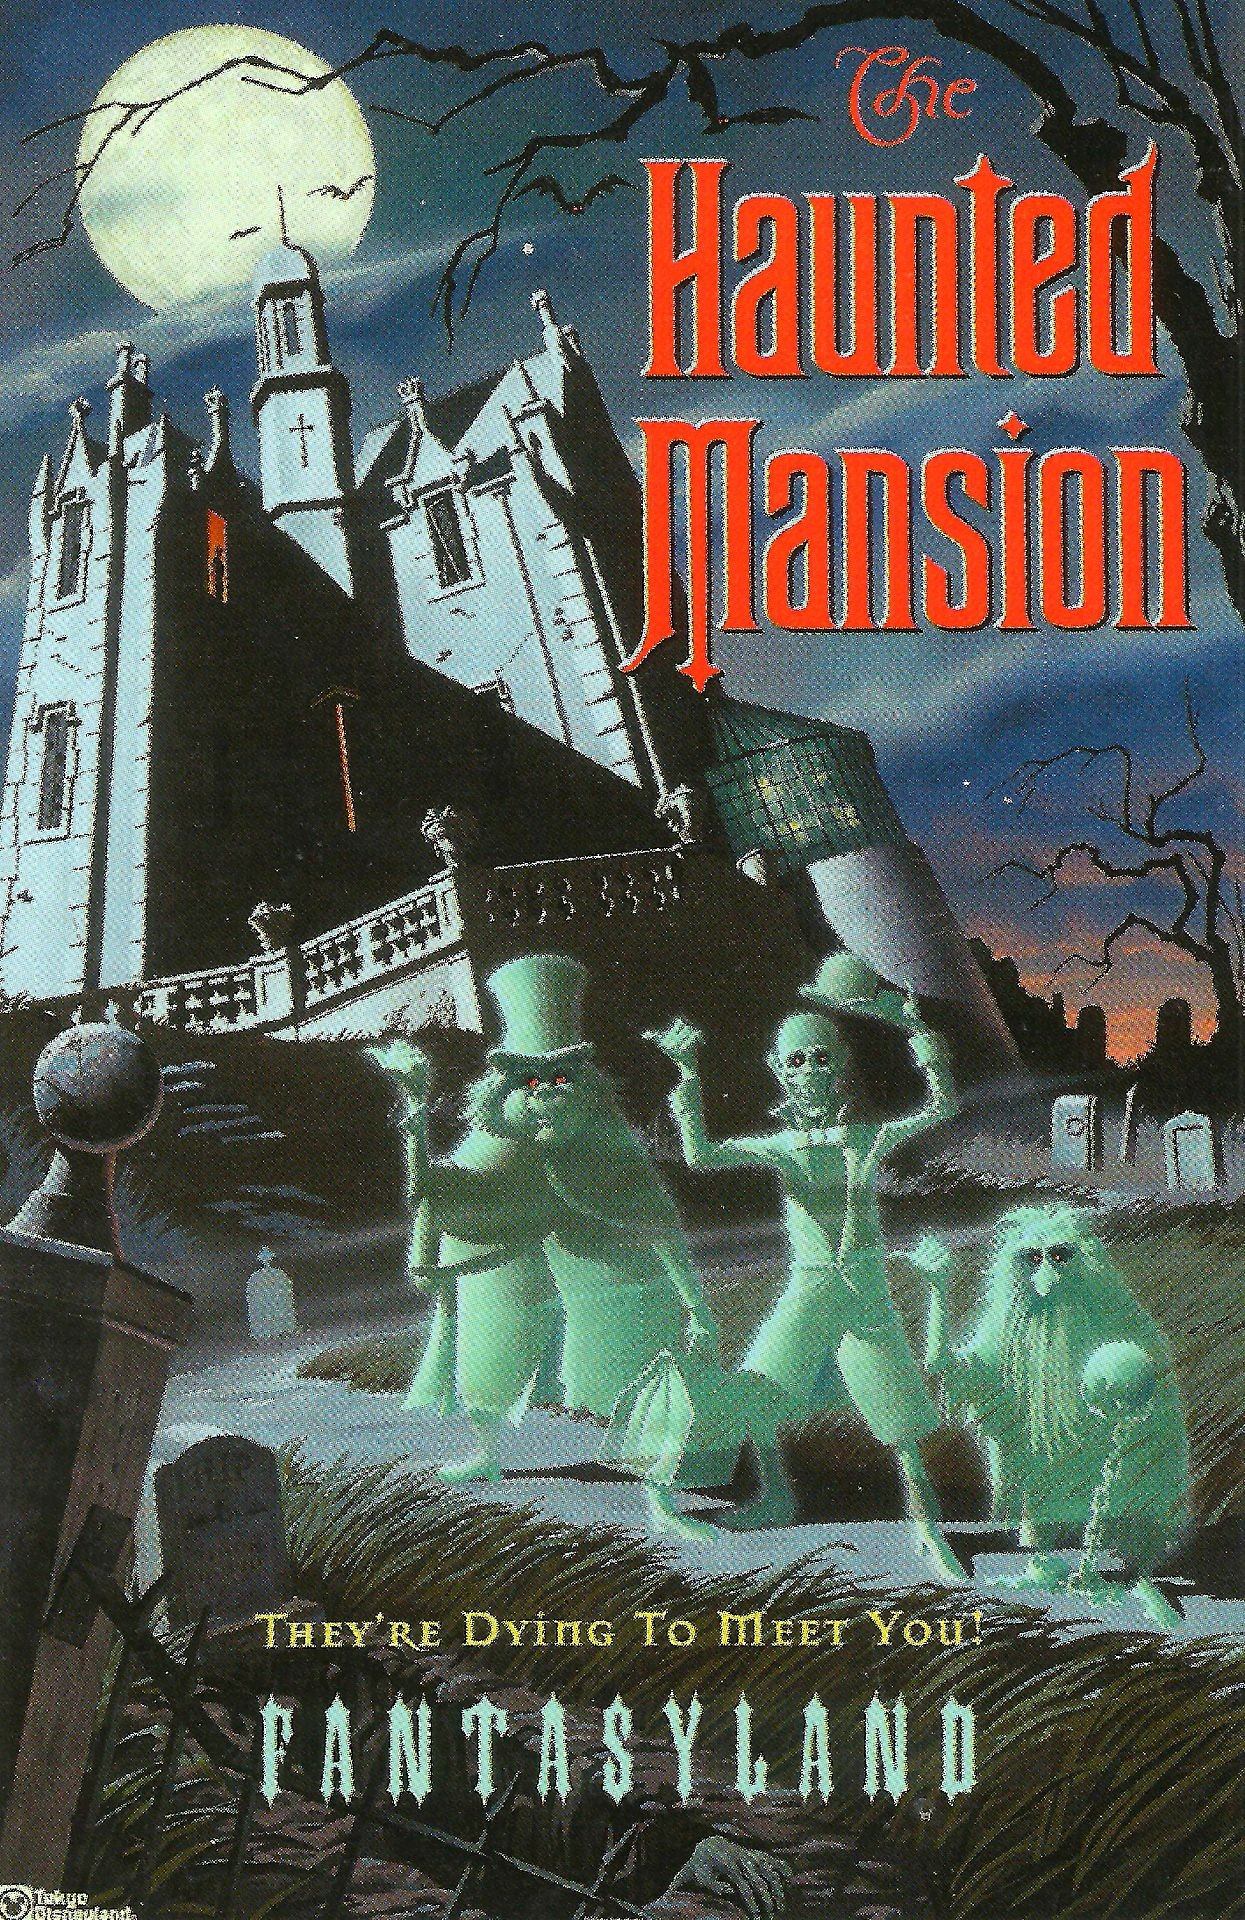 tokyo haunted mansion poster the haunted mansion